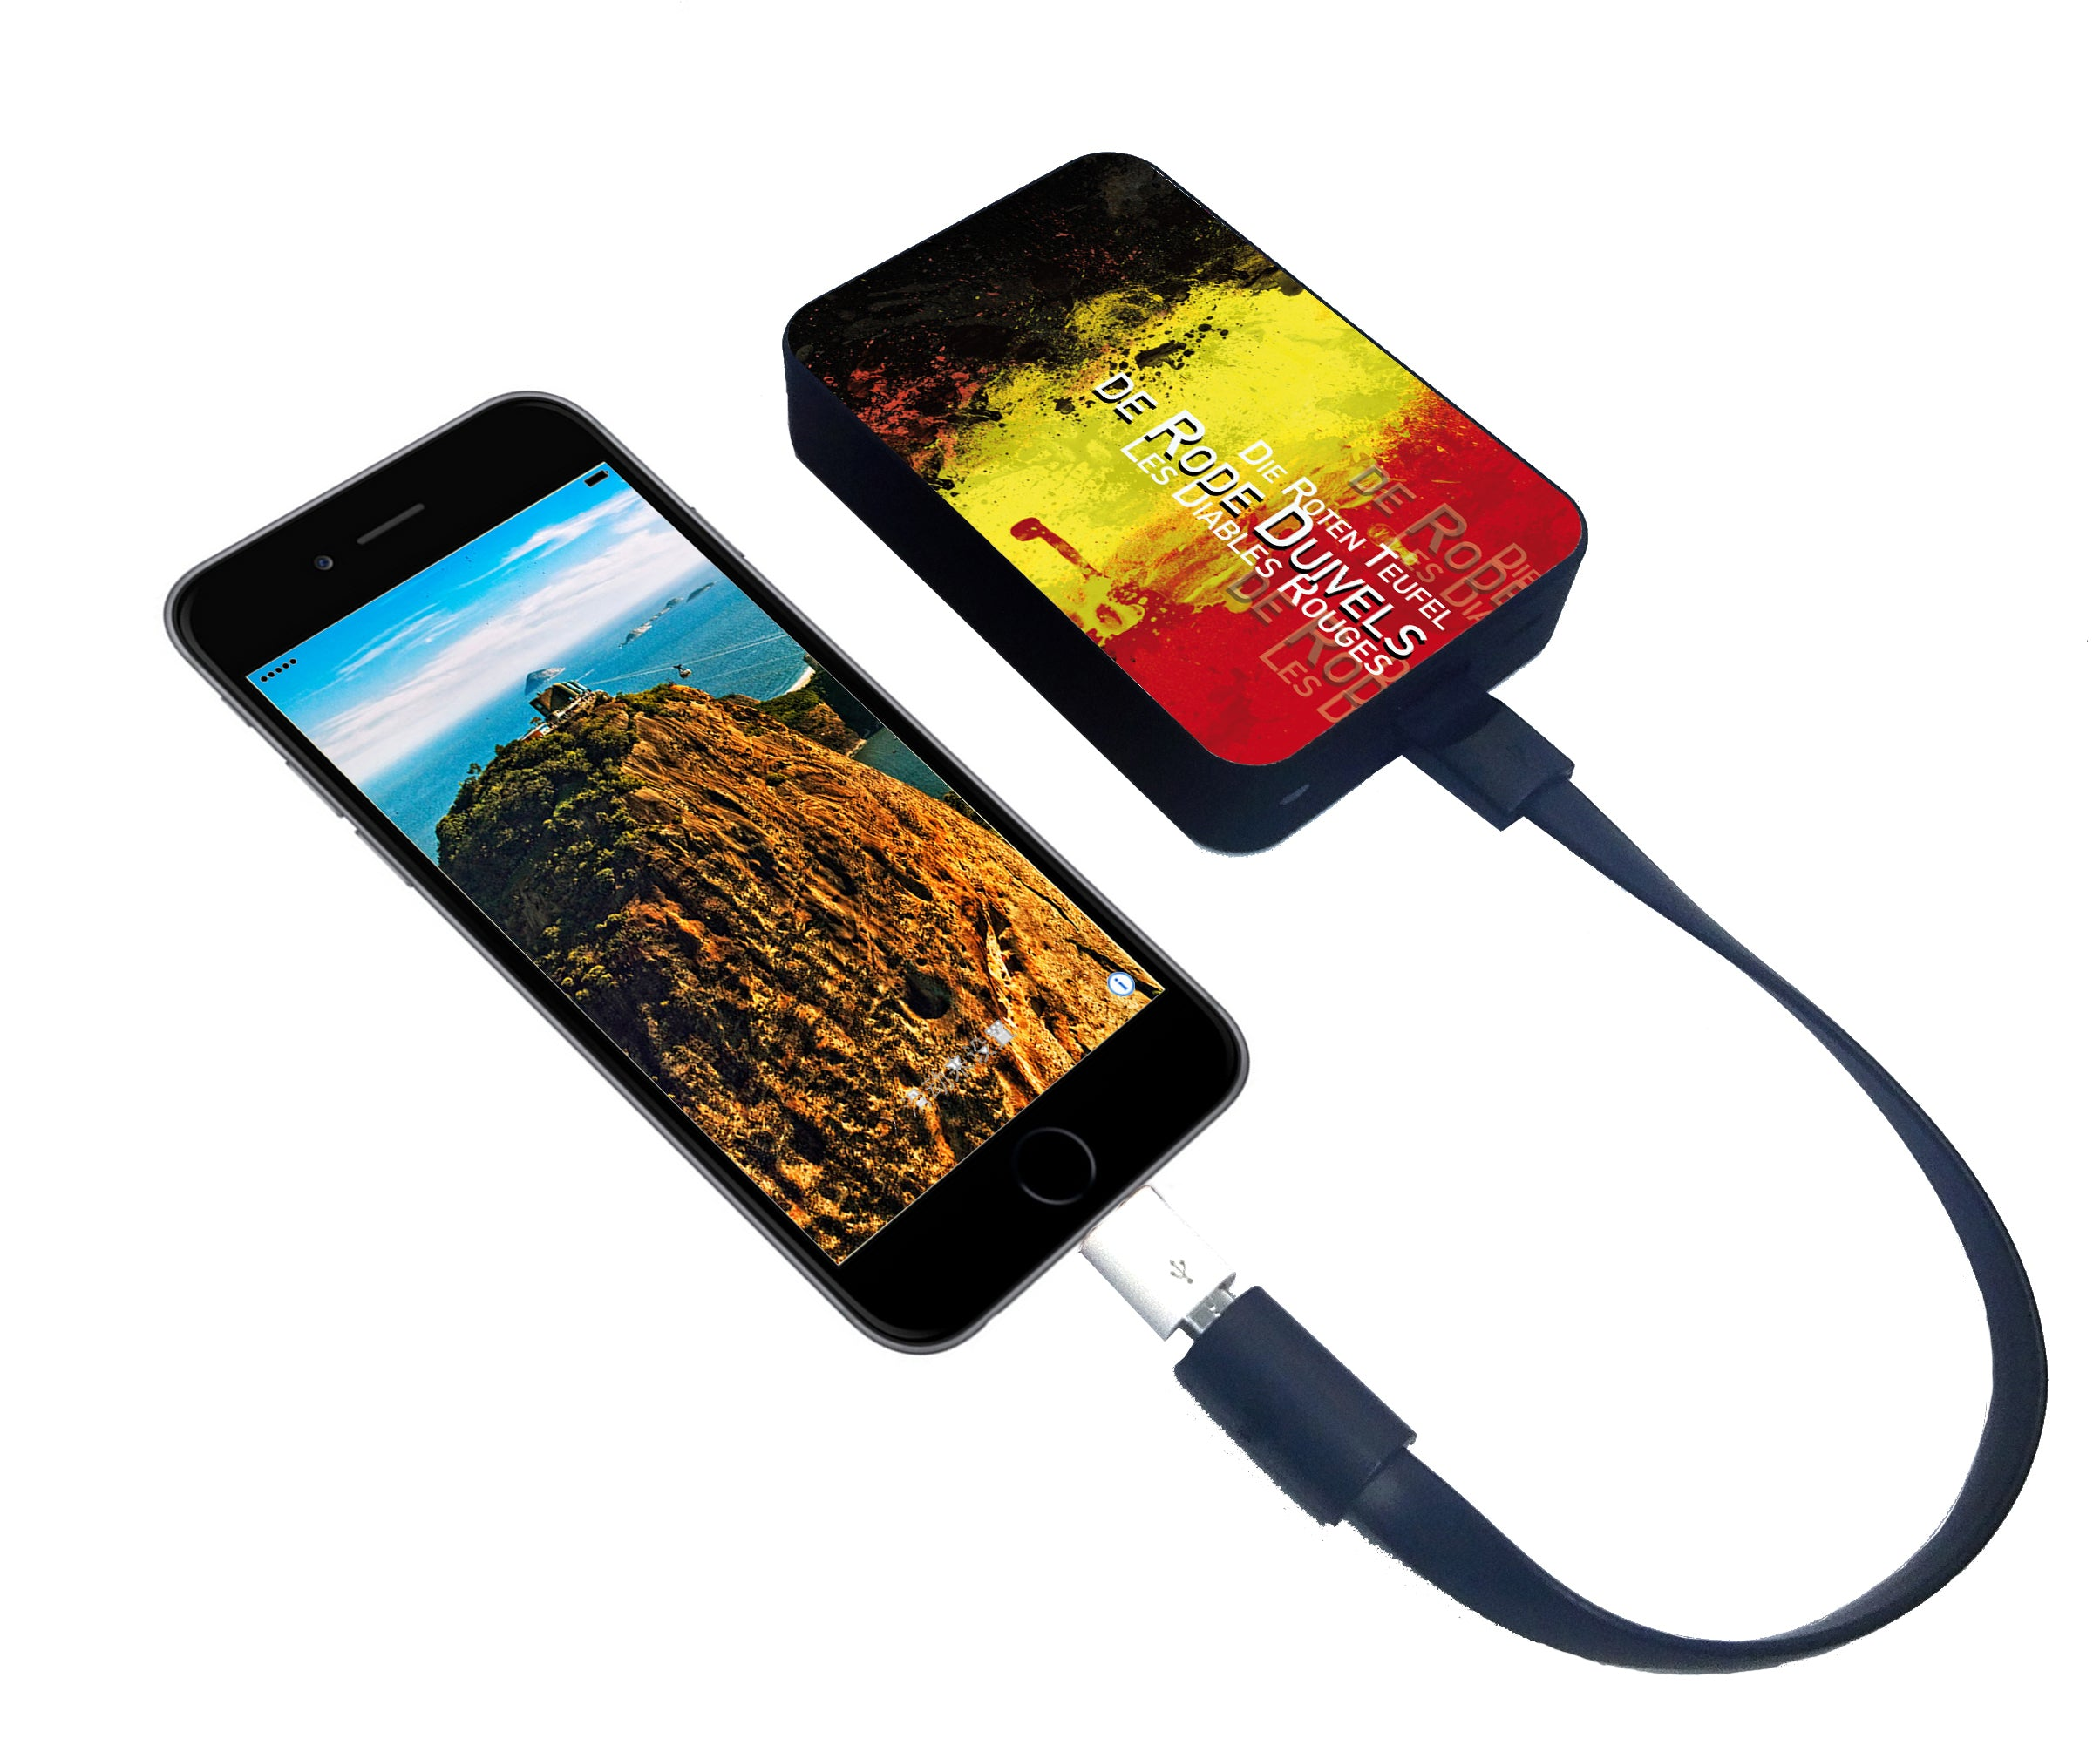 World's Smallest 10,000 mAh Power Bank - CHJGD Ultracompact (Belgium World Cup) - CHARGEDPOWER.COM